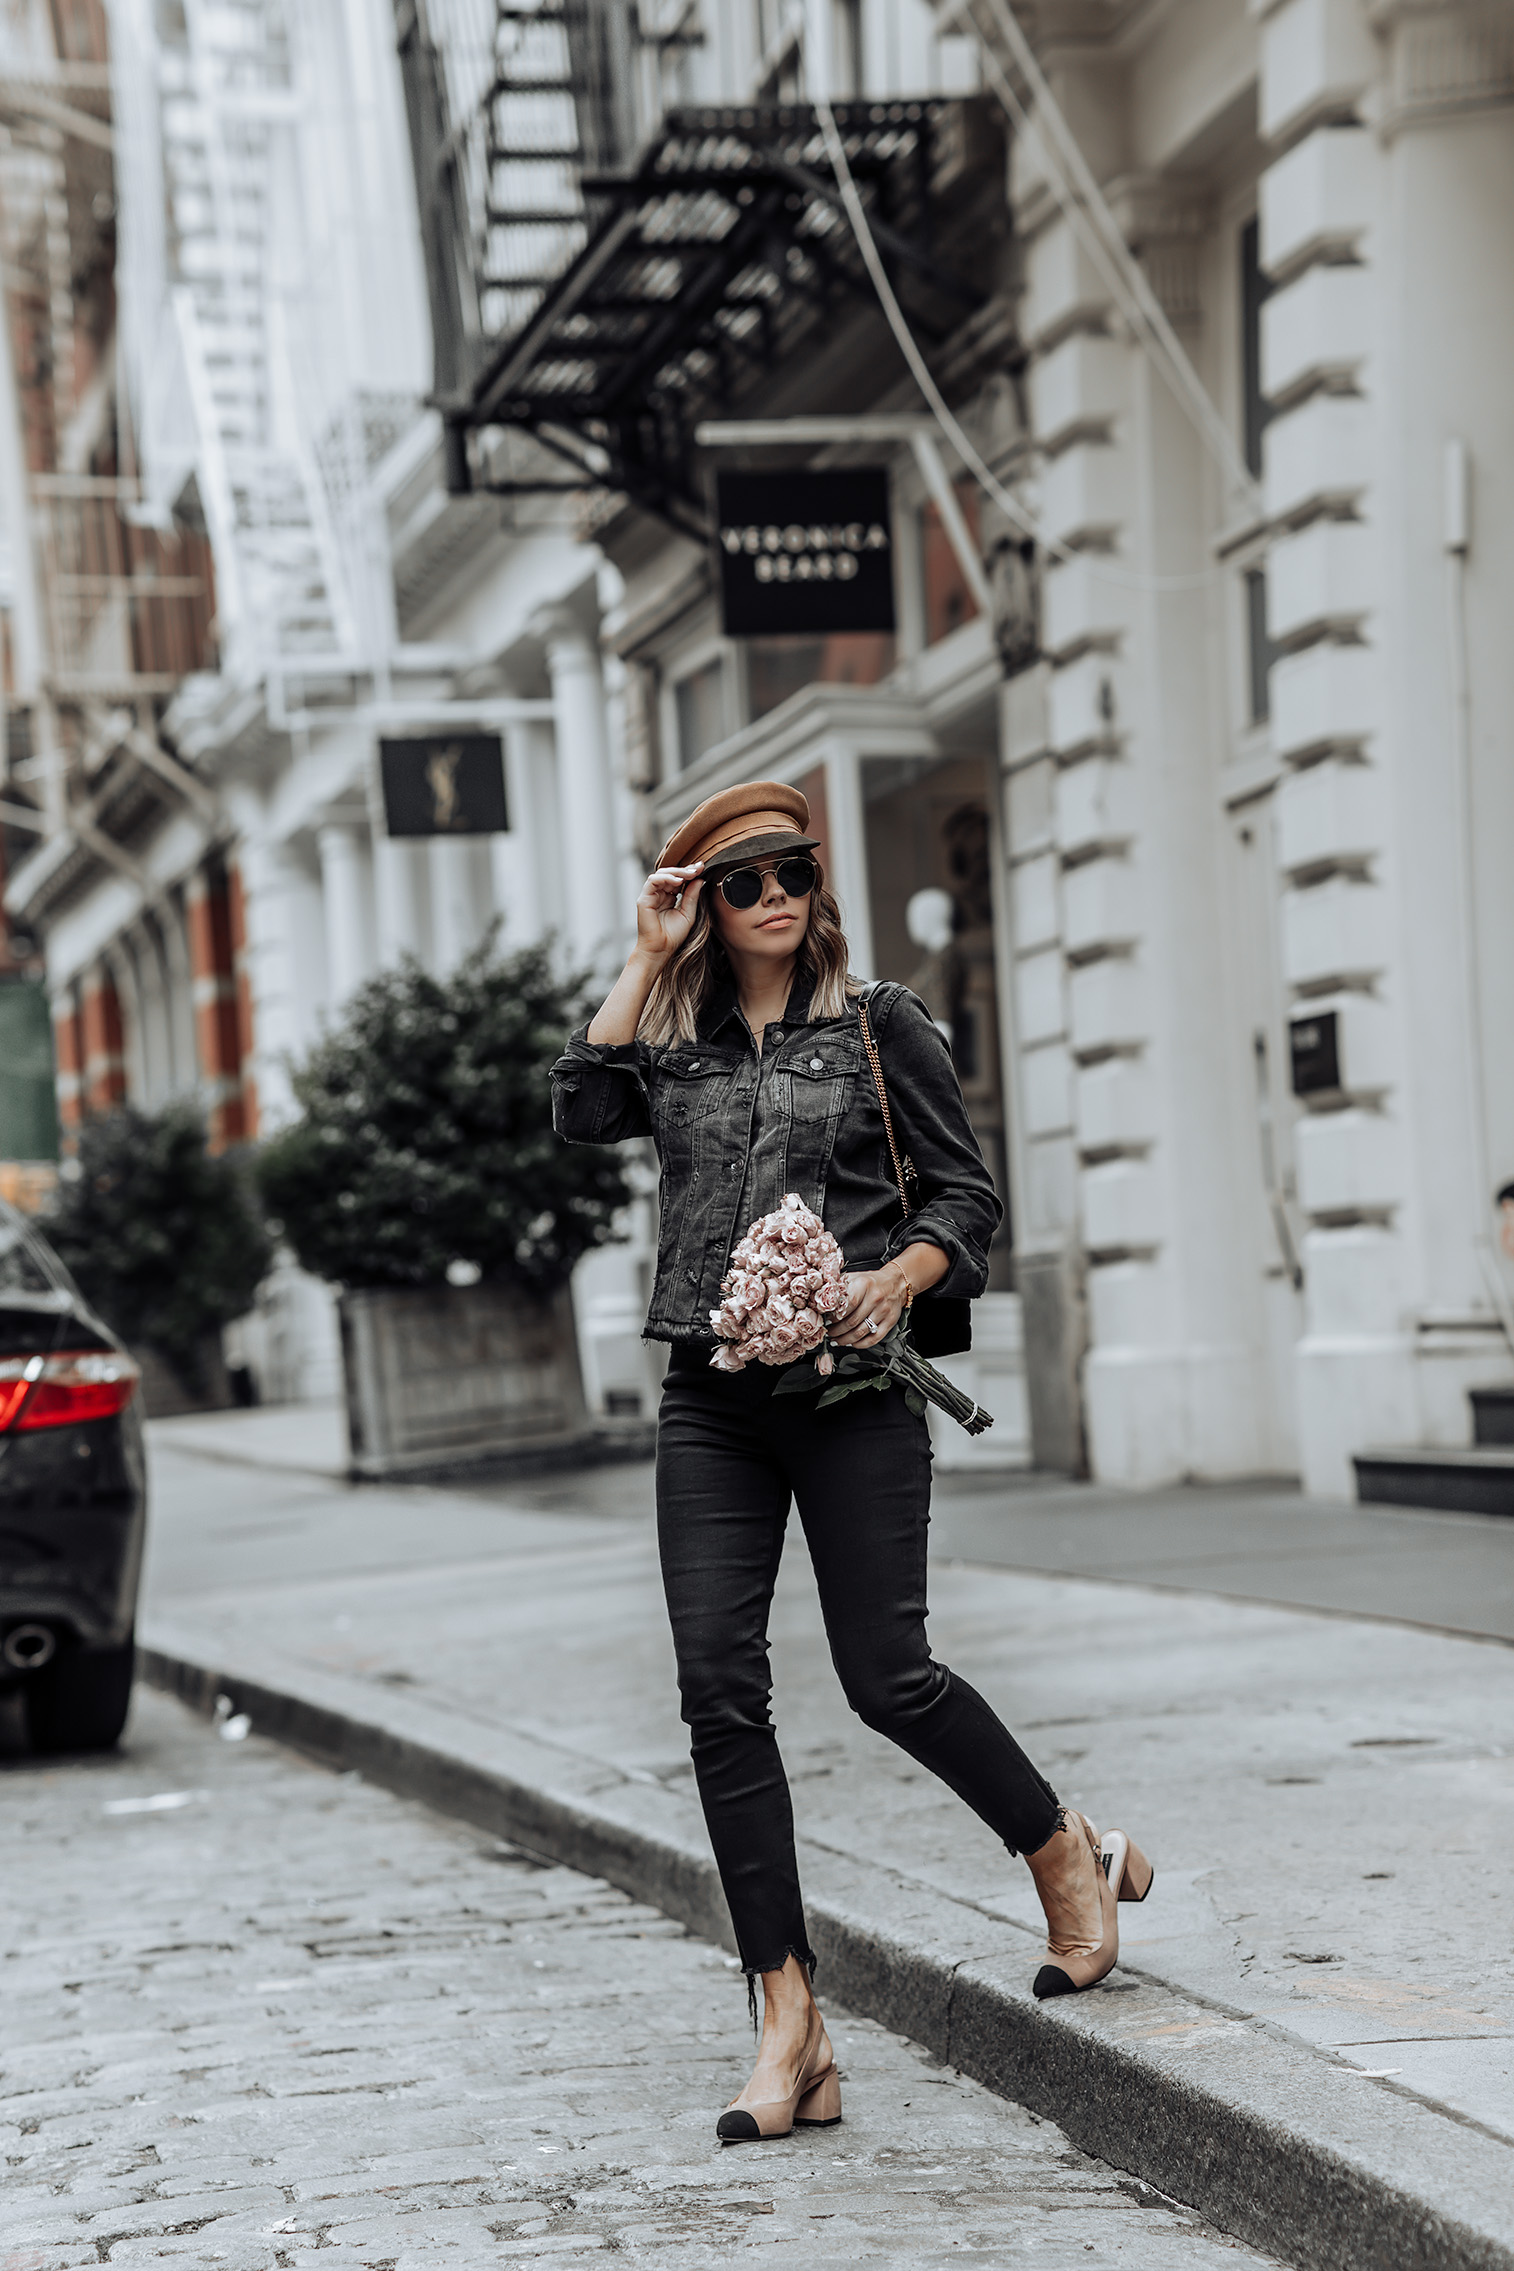 Denim on Denim | Click to shop the look:Abercrombie Denim Jacket | High Rise Ankle Jeans | NYC blog #nycblogger #ootd #liketkit